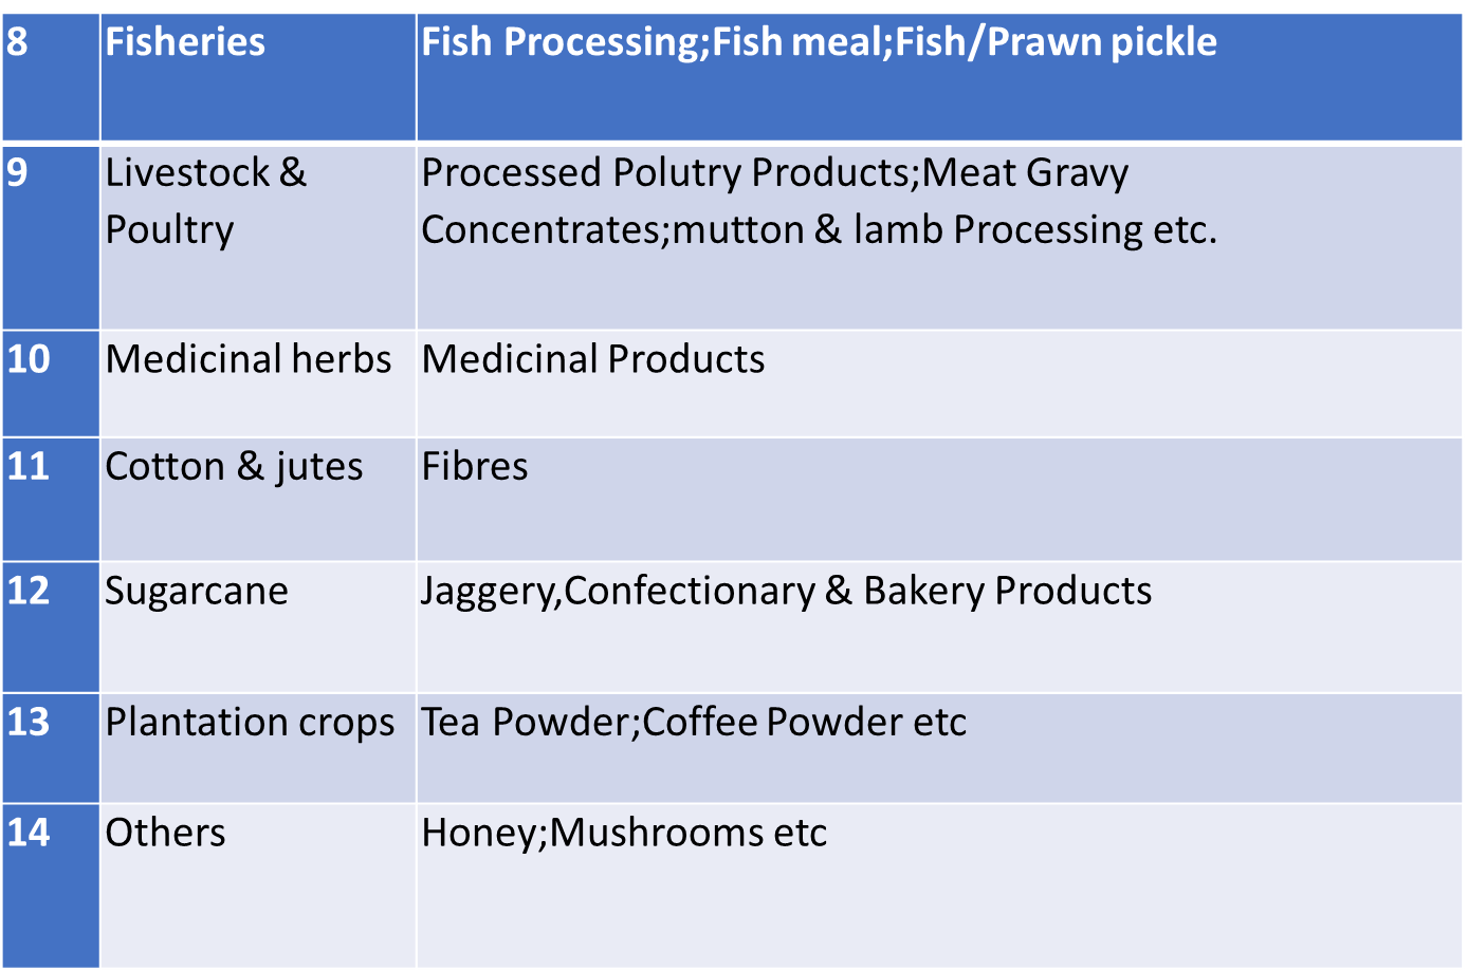 Agro-based Select Industry & Finished Output